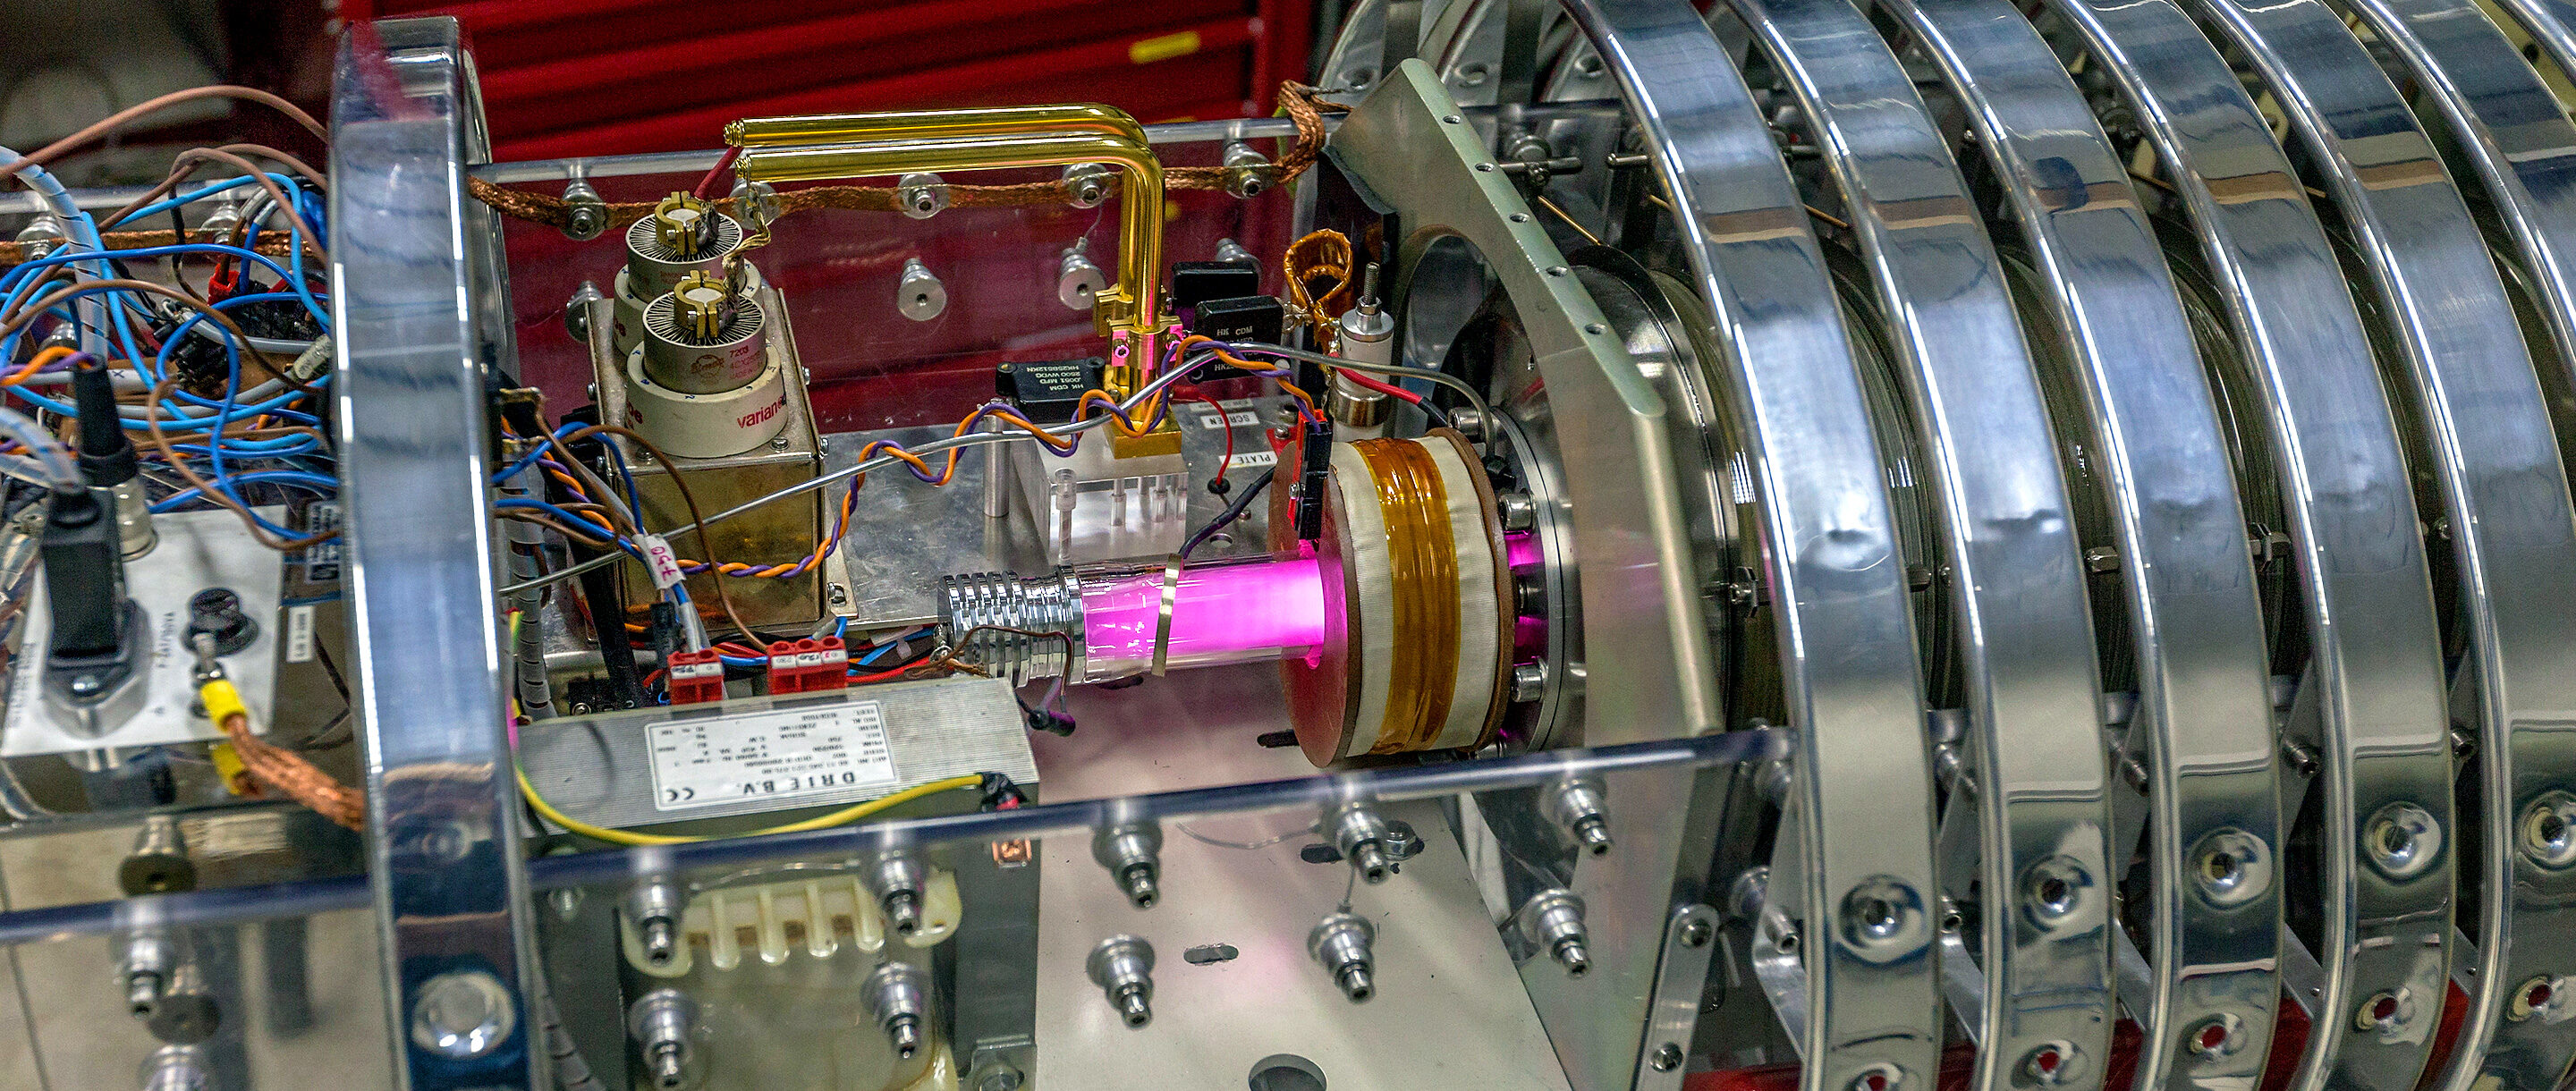 A pink beam at the center of a metallic experimental apparatus.